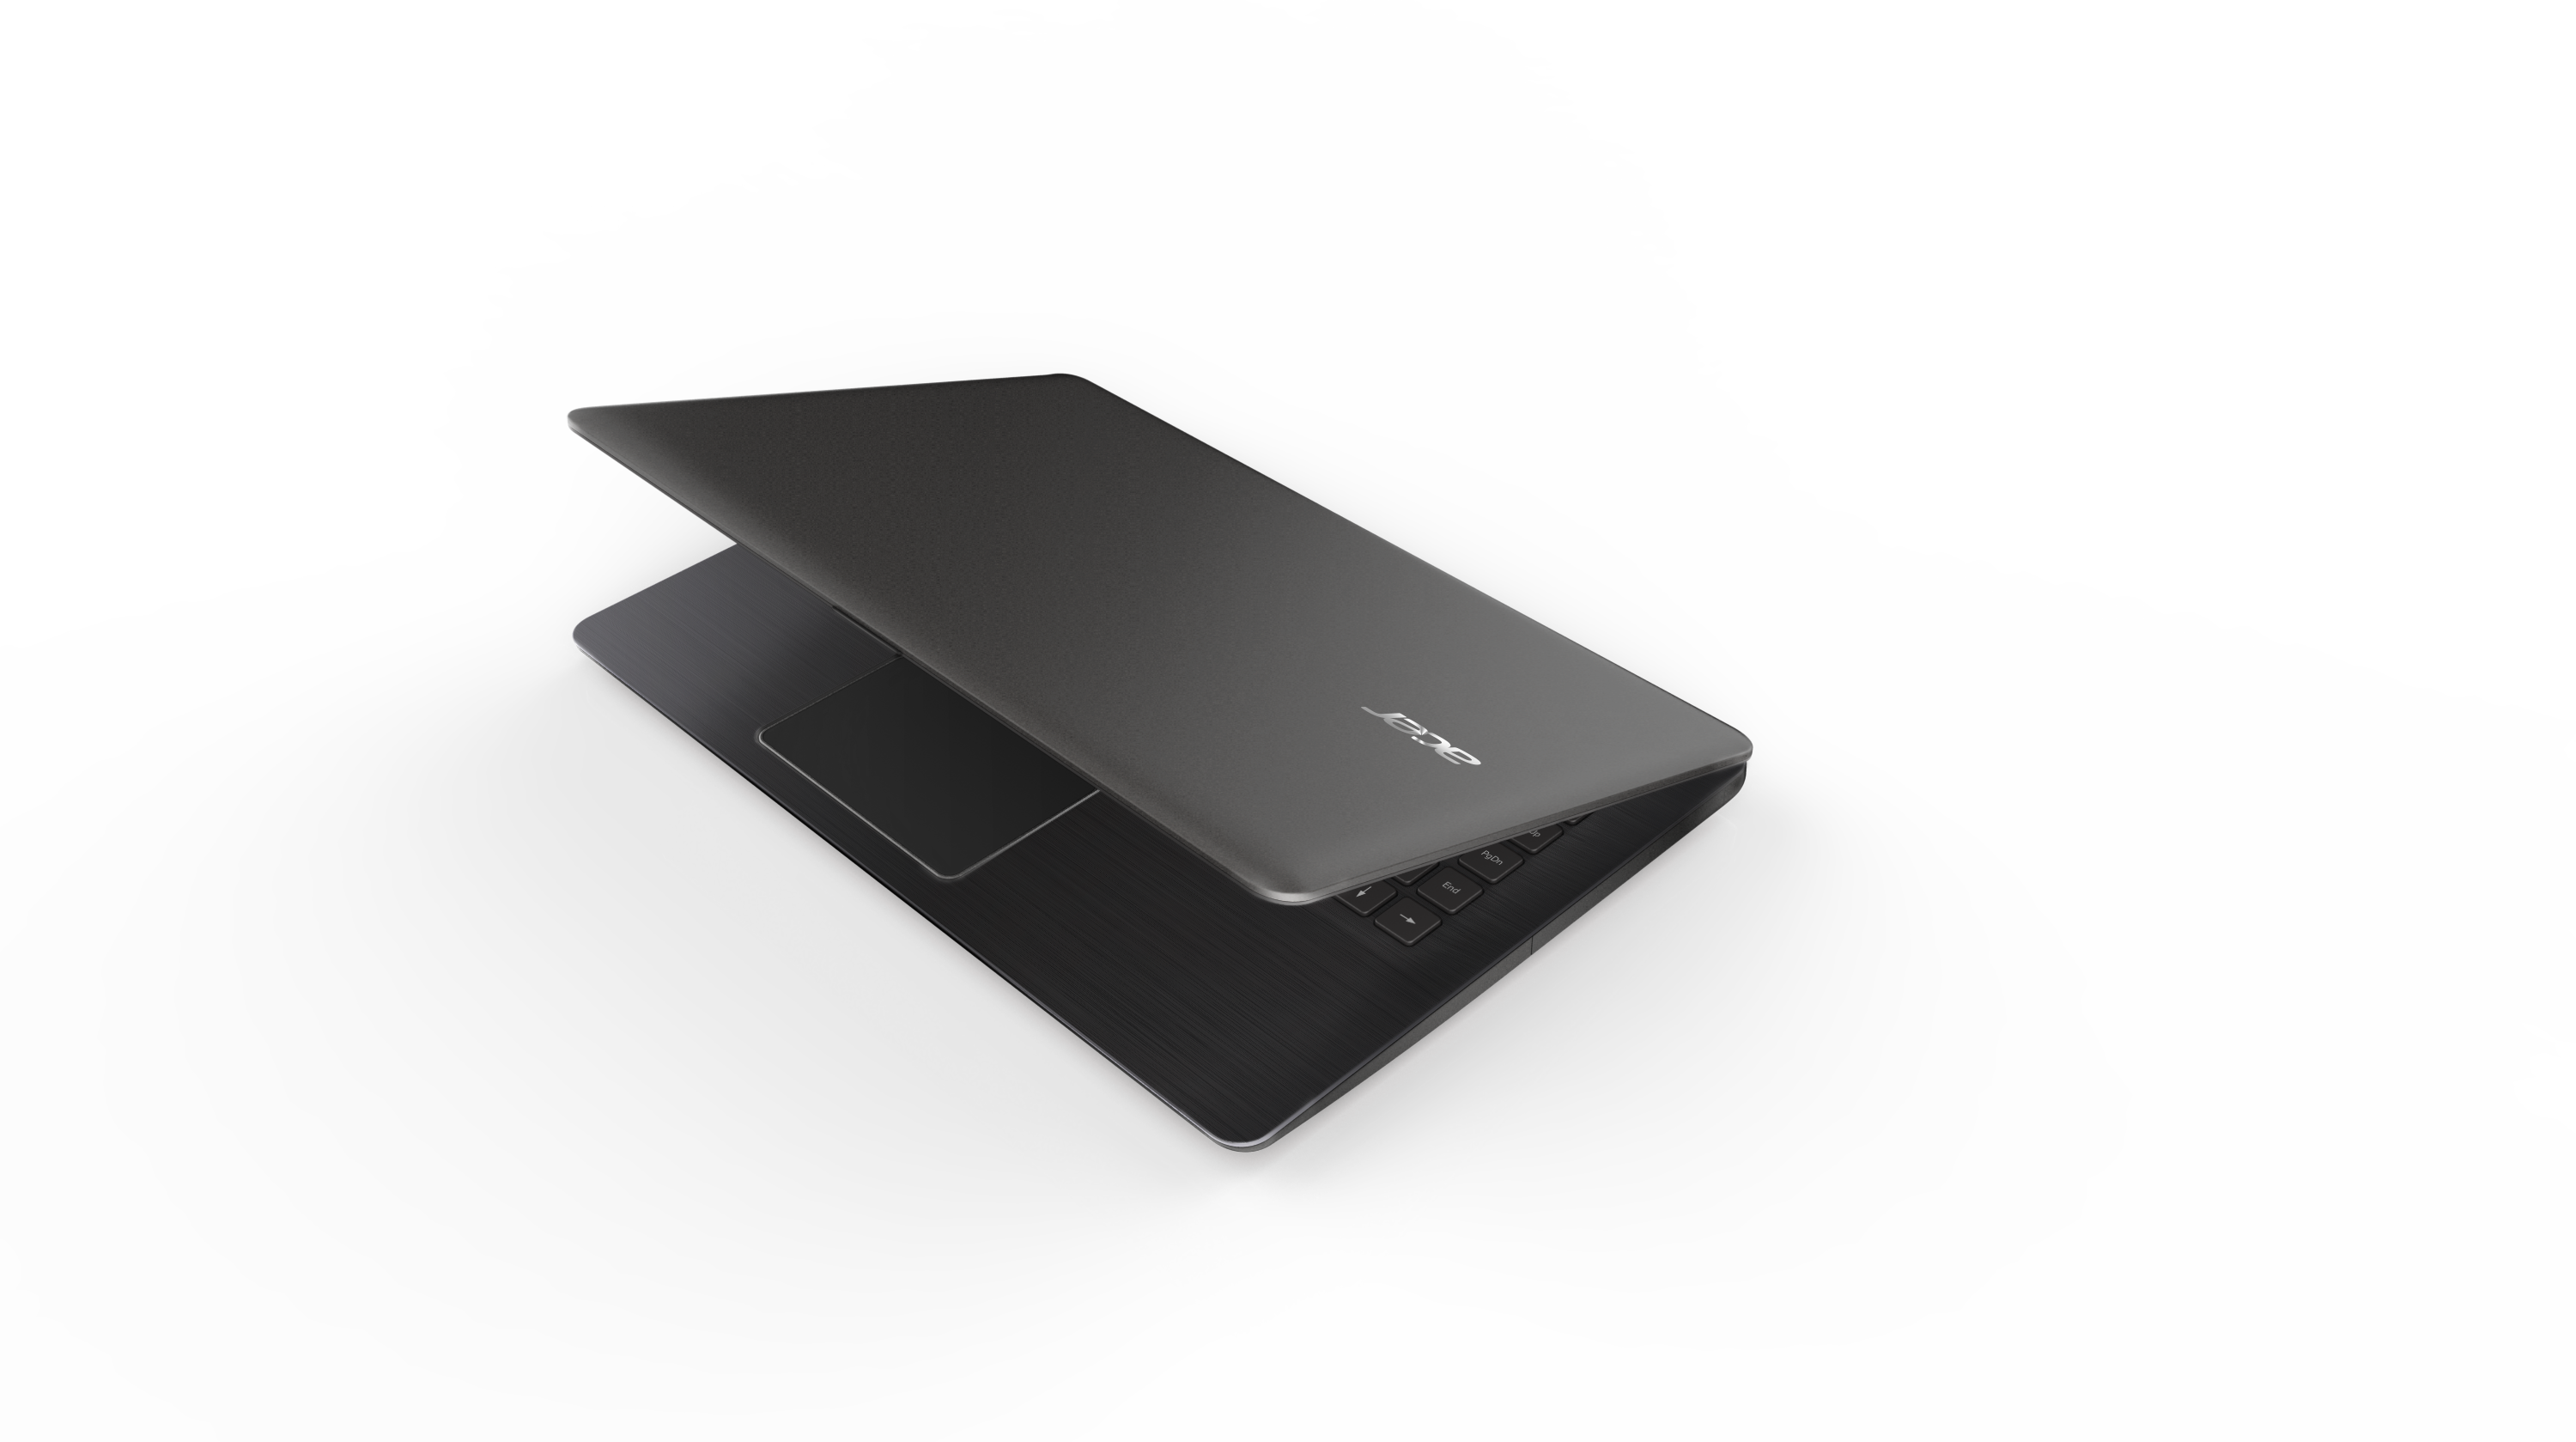 Acer e 14 L1410 Detail spec product Processor Intel Celeron Dual Core N3050 Processor 2MB 1 60GHz up to 2 16GHz OS Windows 10 Home Alinux